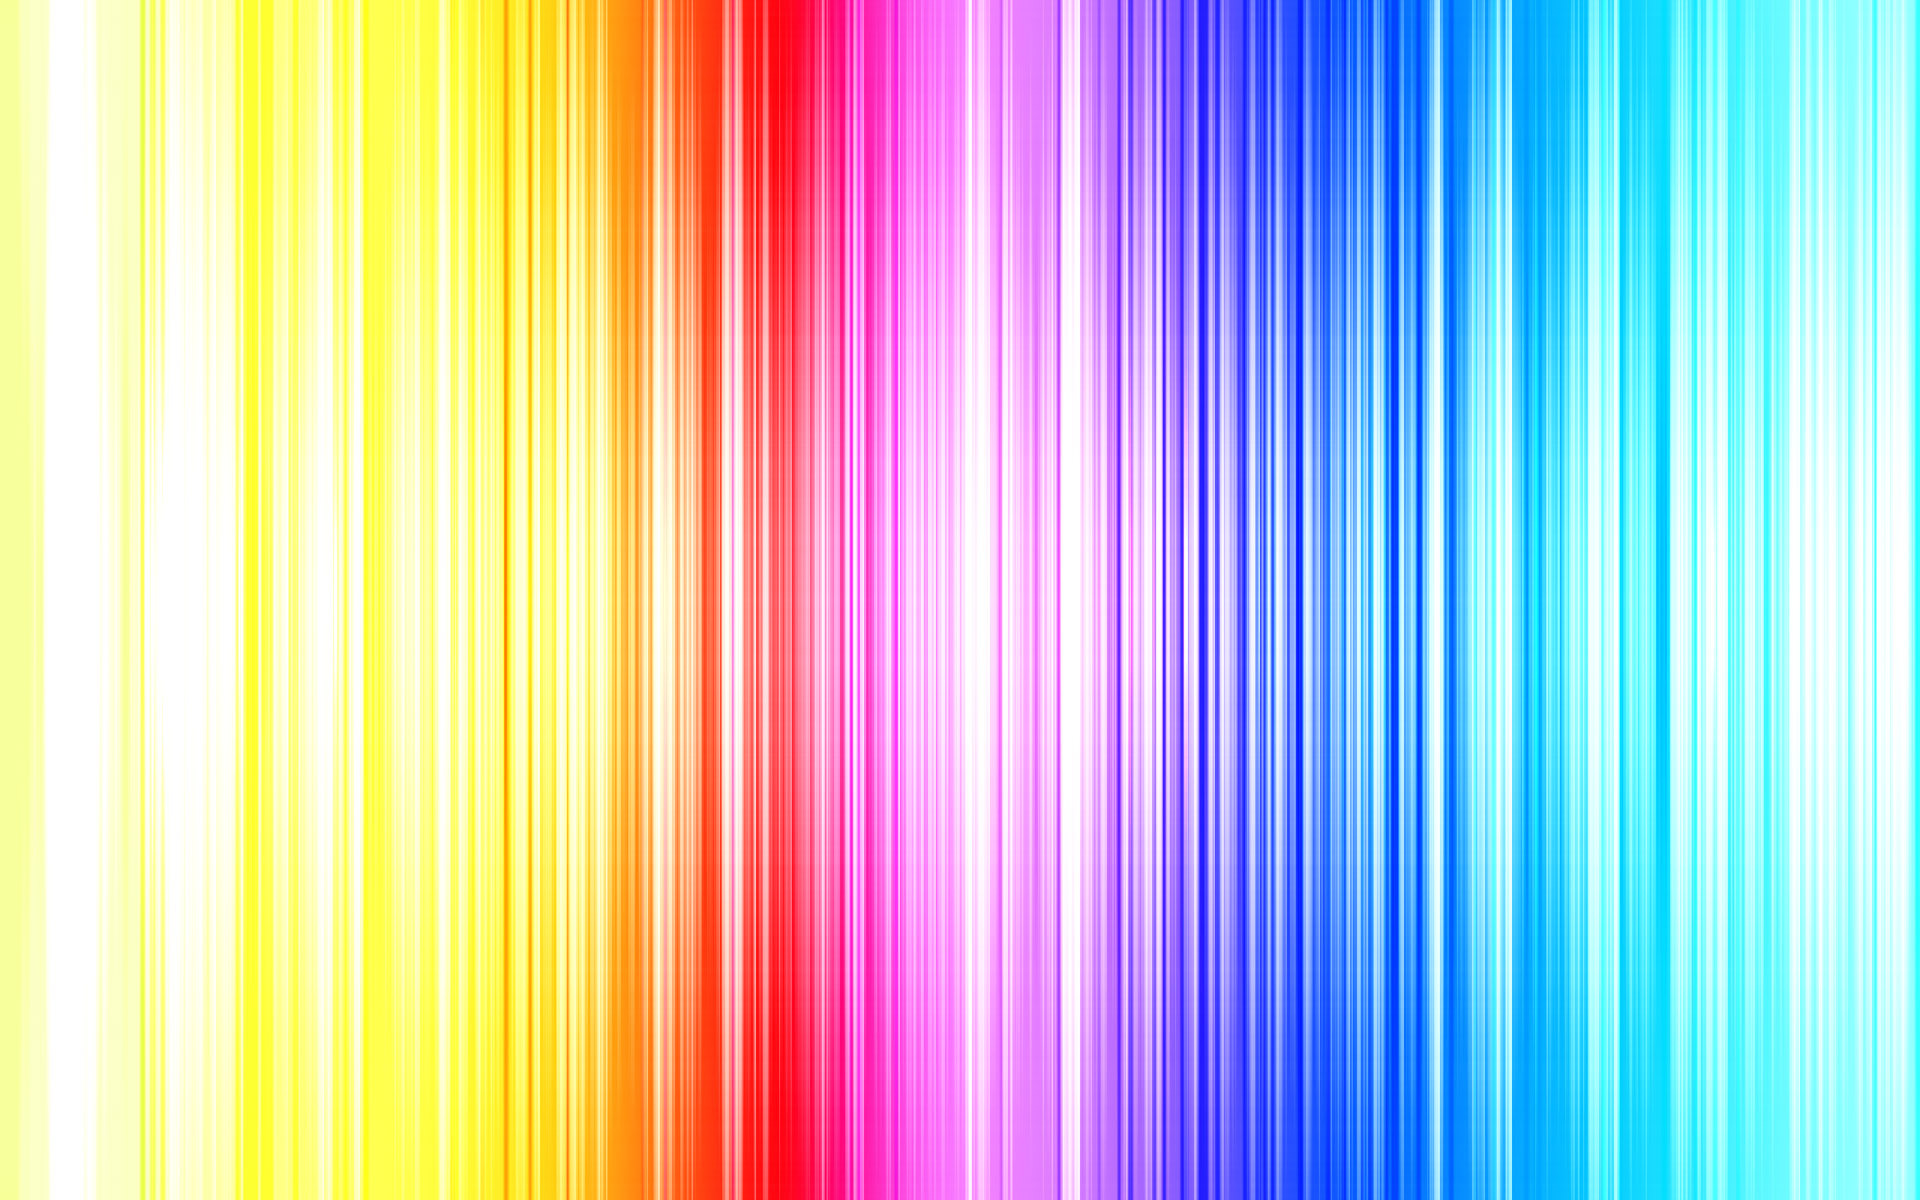 Colorful Background Wallpaper 1920x1200 65923